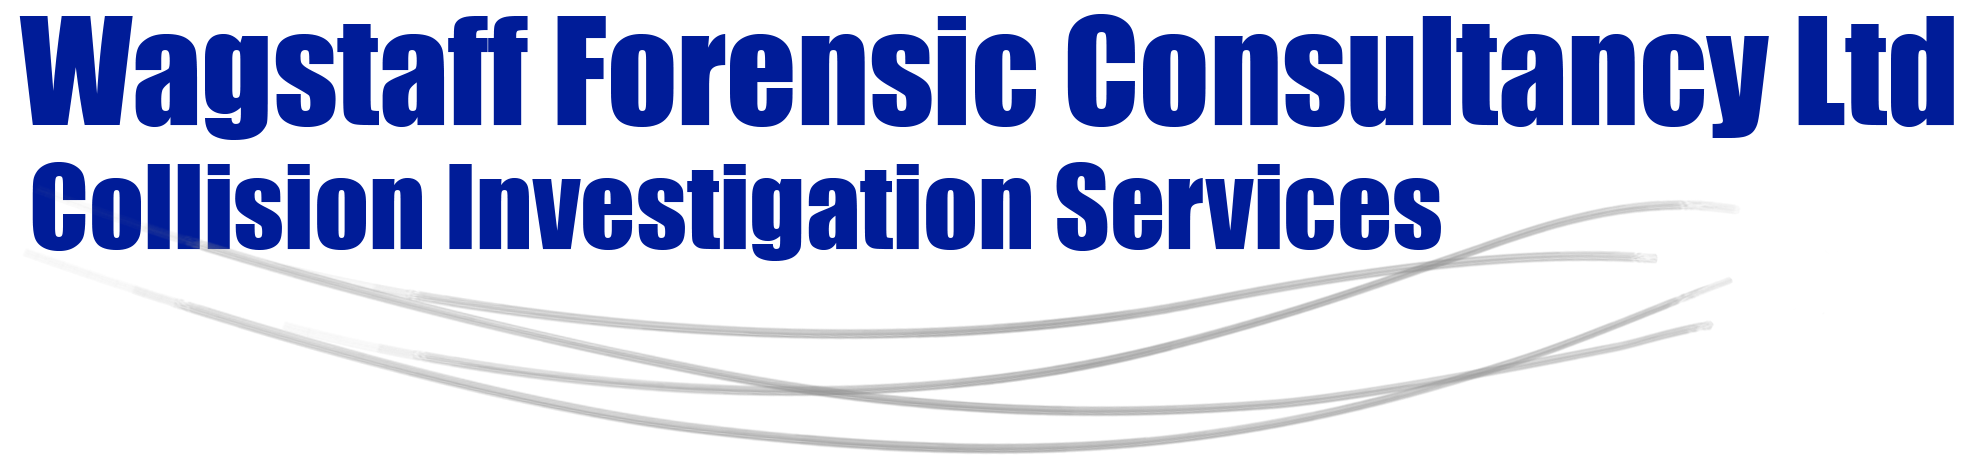 Wagstaff Forensic Consultancy